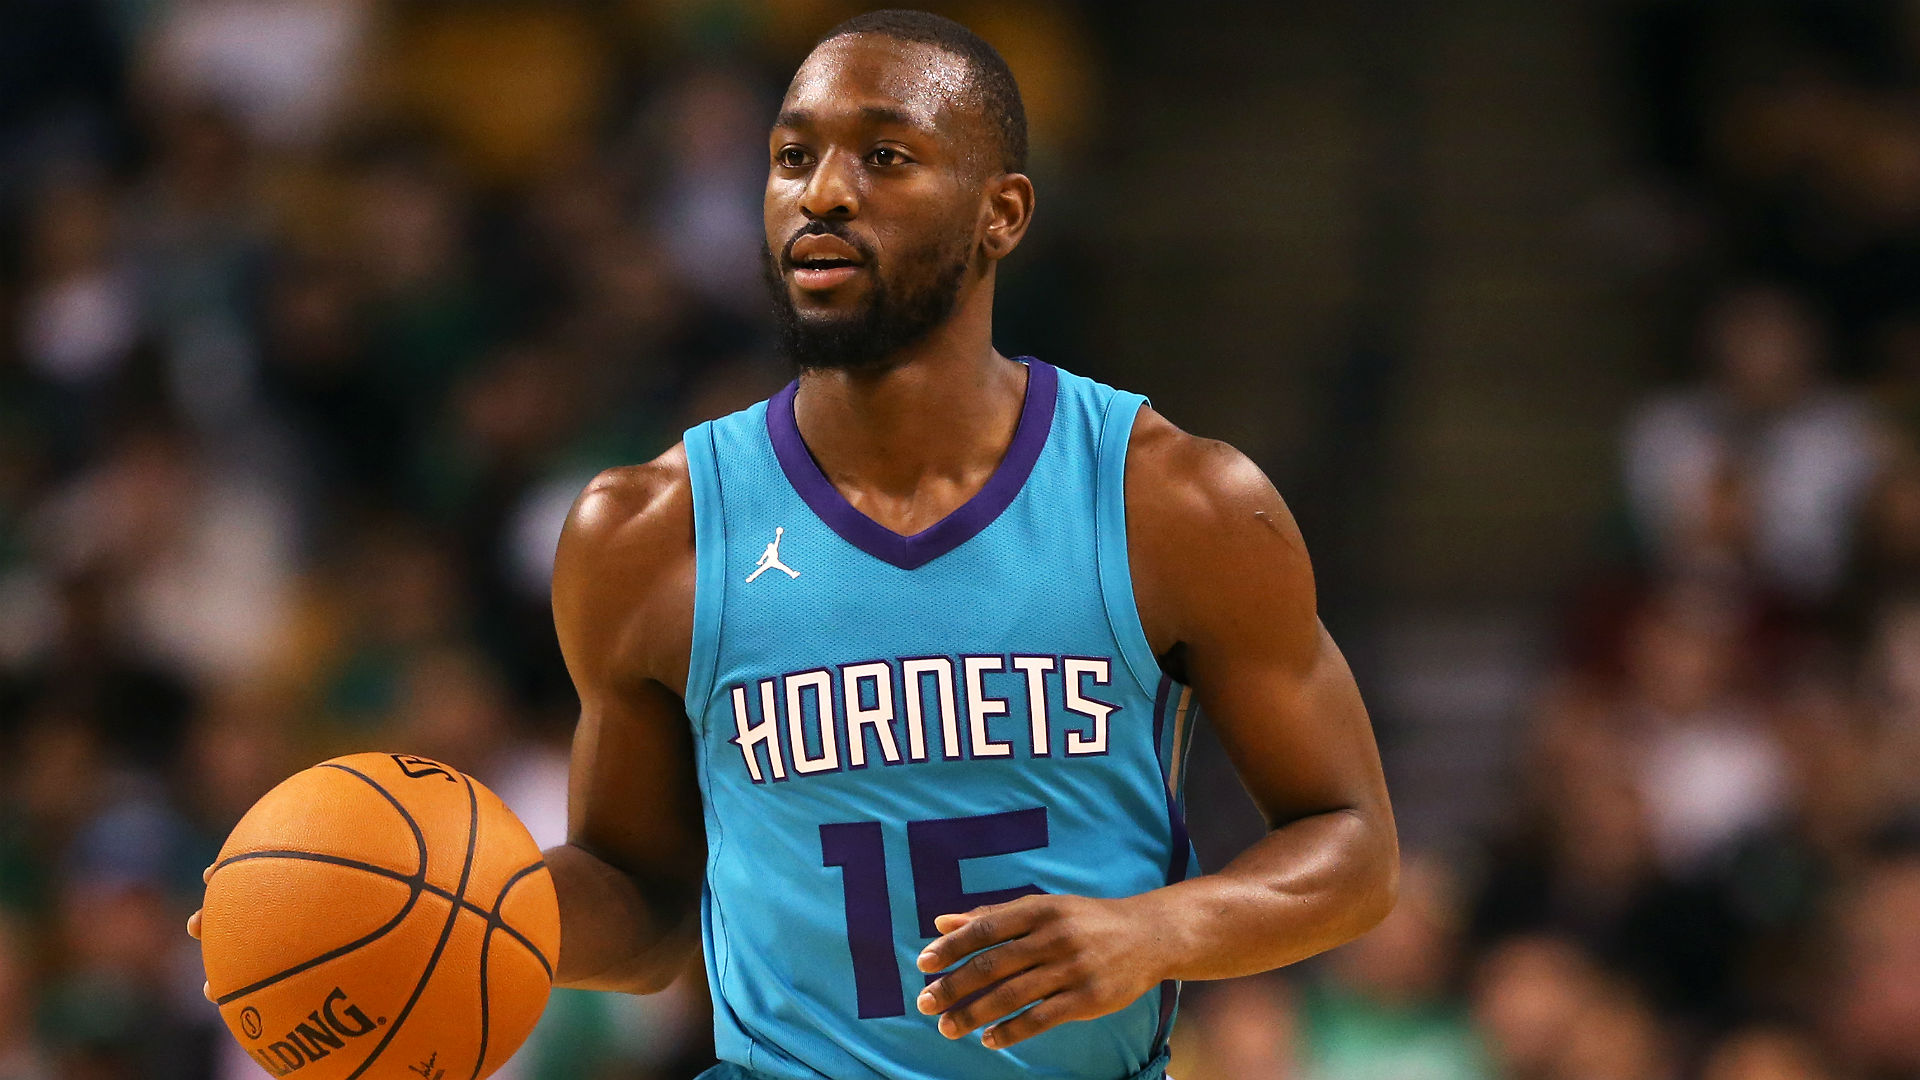 Walker doubts he'll join Knicks, wants 'long' stay at Hornets